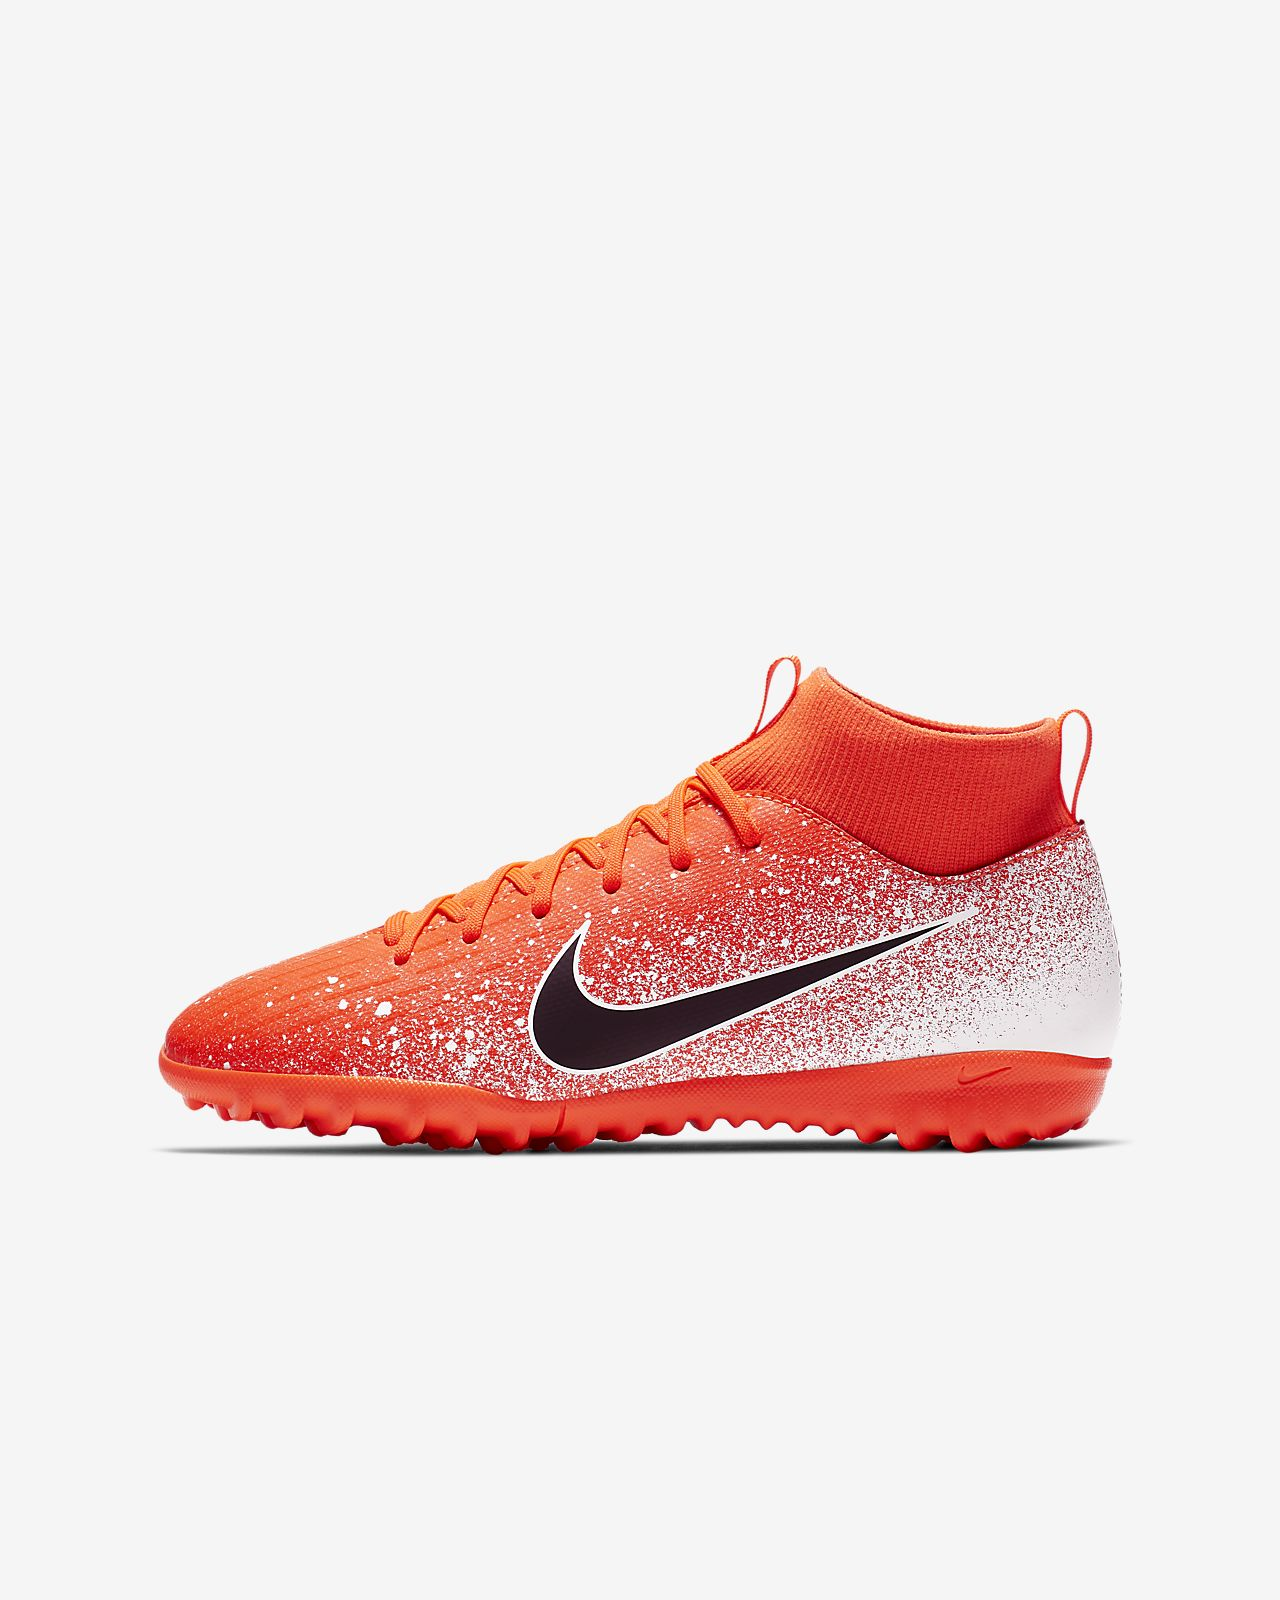 pretty nice 38d0b 7f1f4 ... Nike Jr. SuperflyX 6 Academy TF Little/Big Kids' Artificial-Turf Soccer